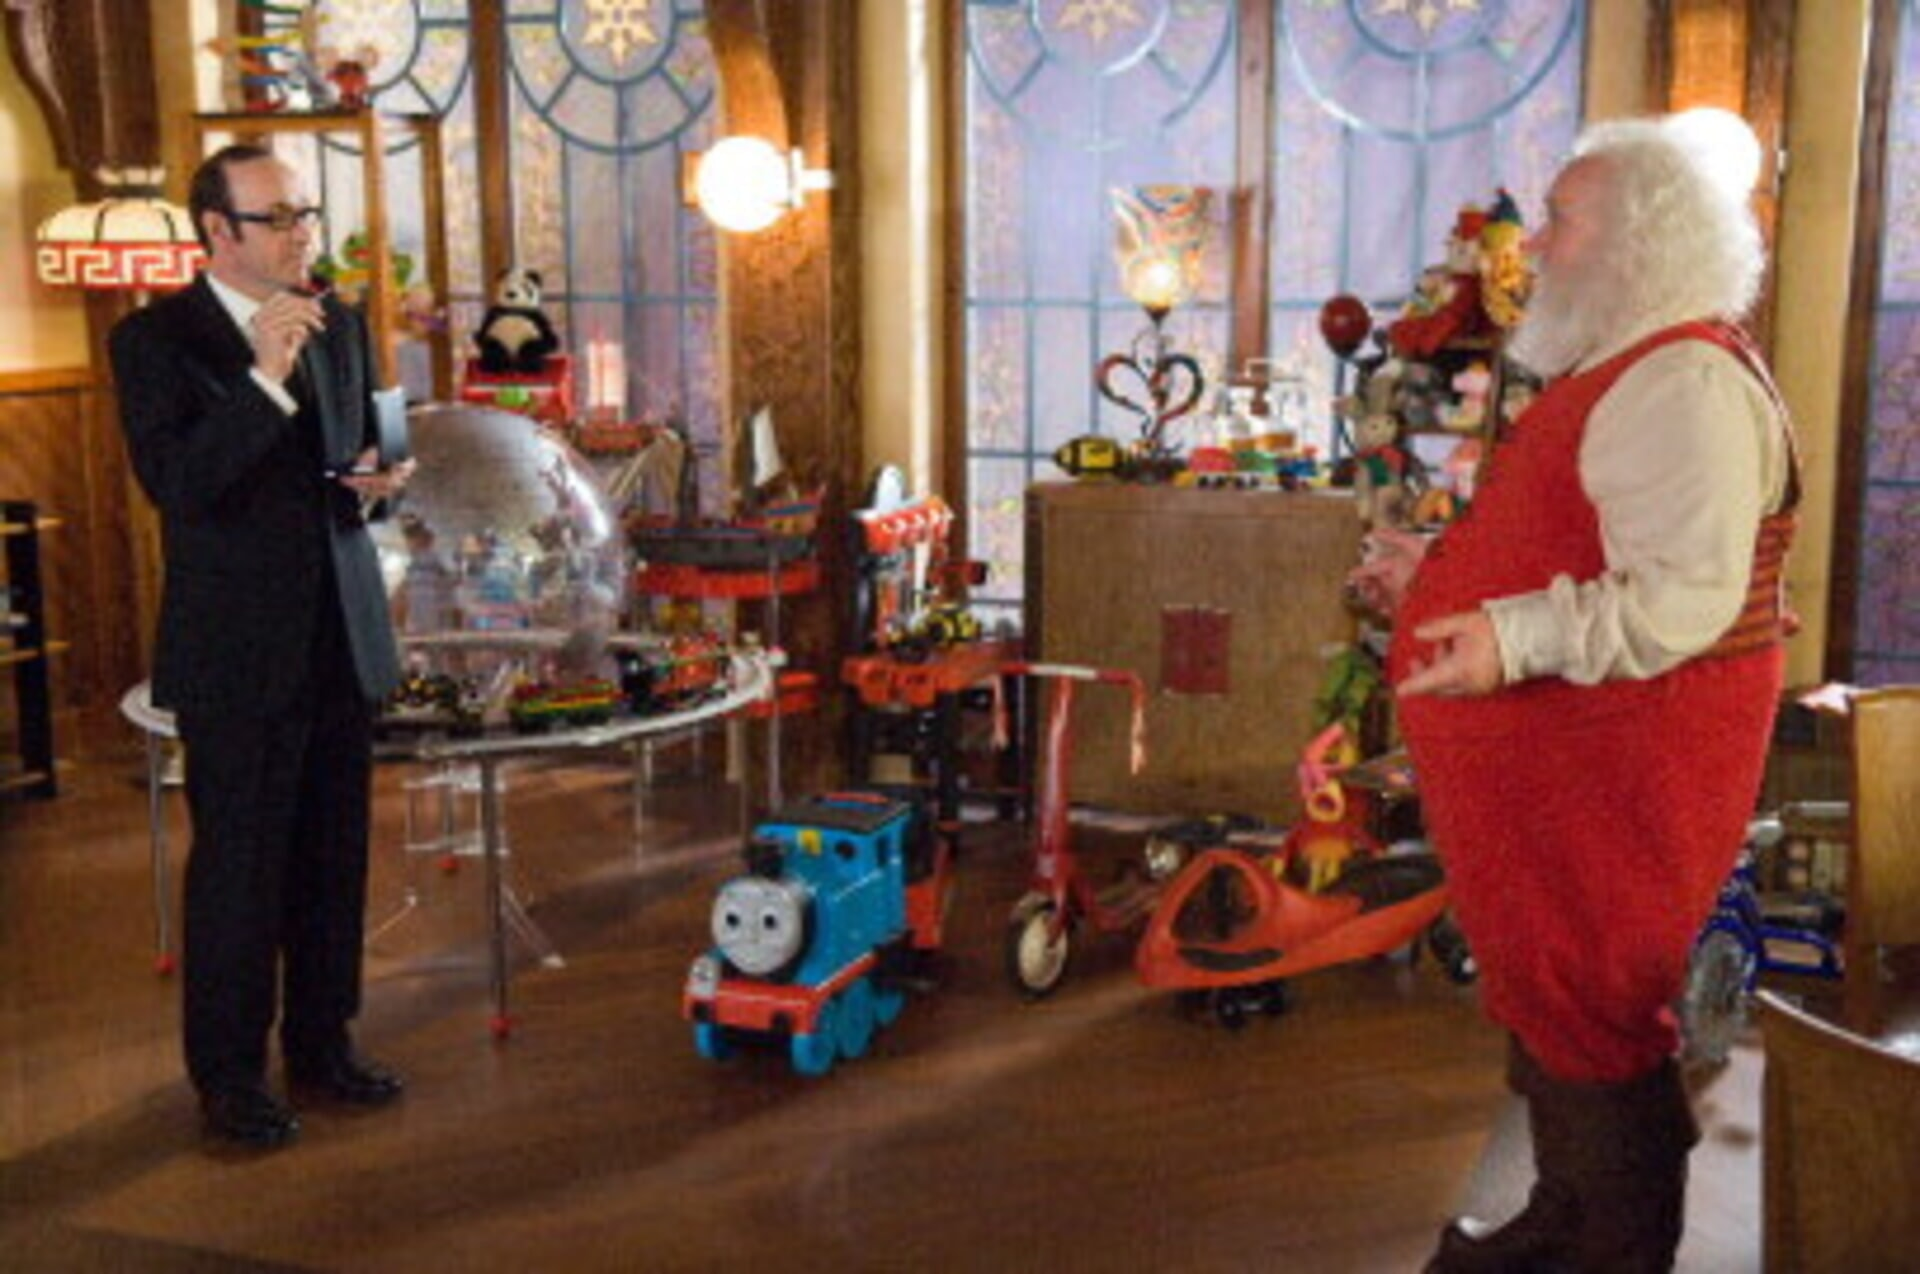 Fred Claus - Image 19